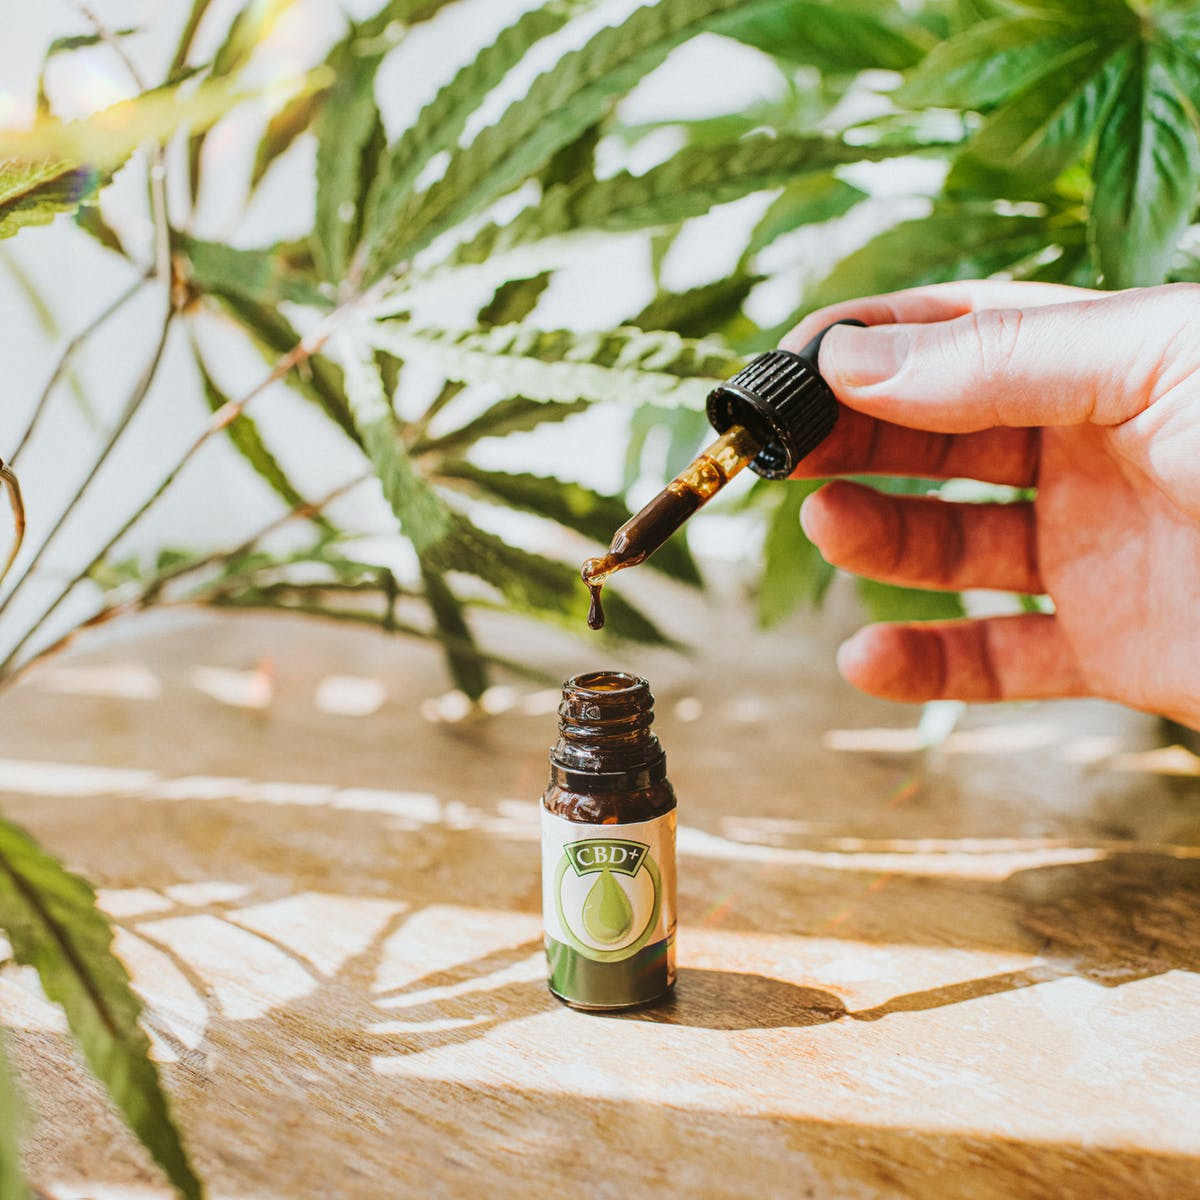 Legality of CBD in USA